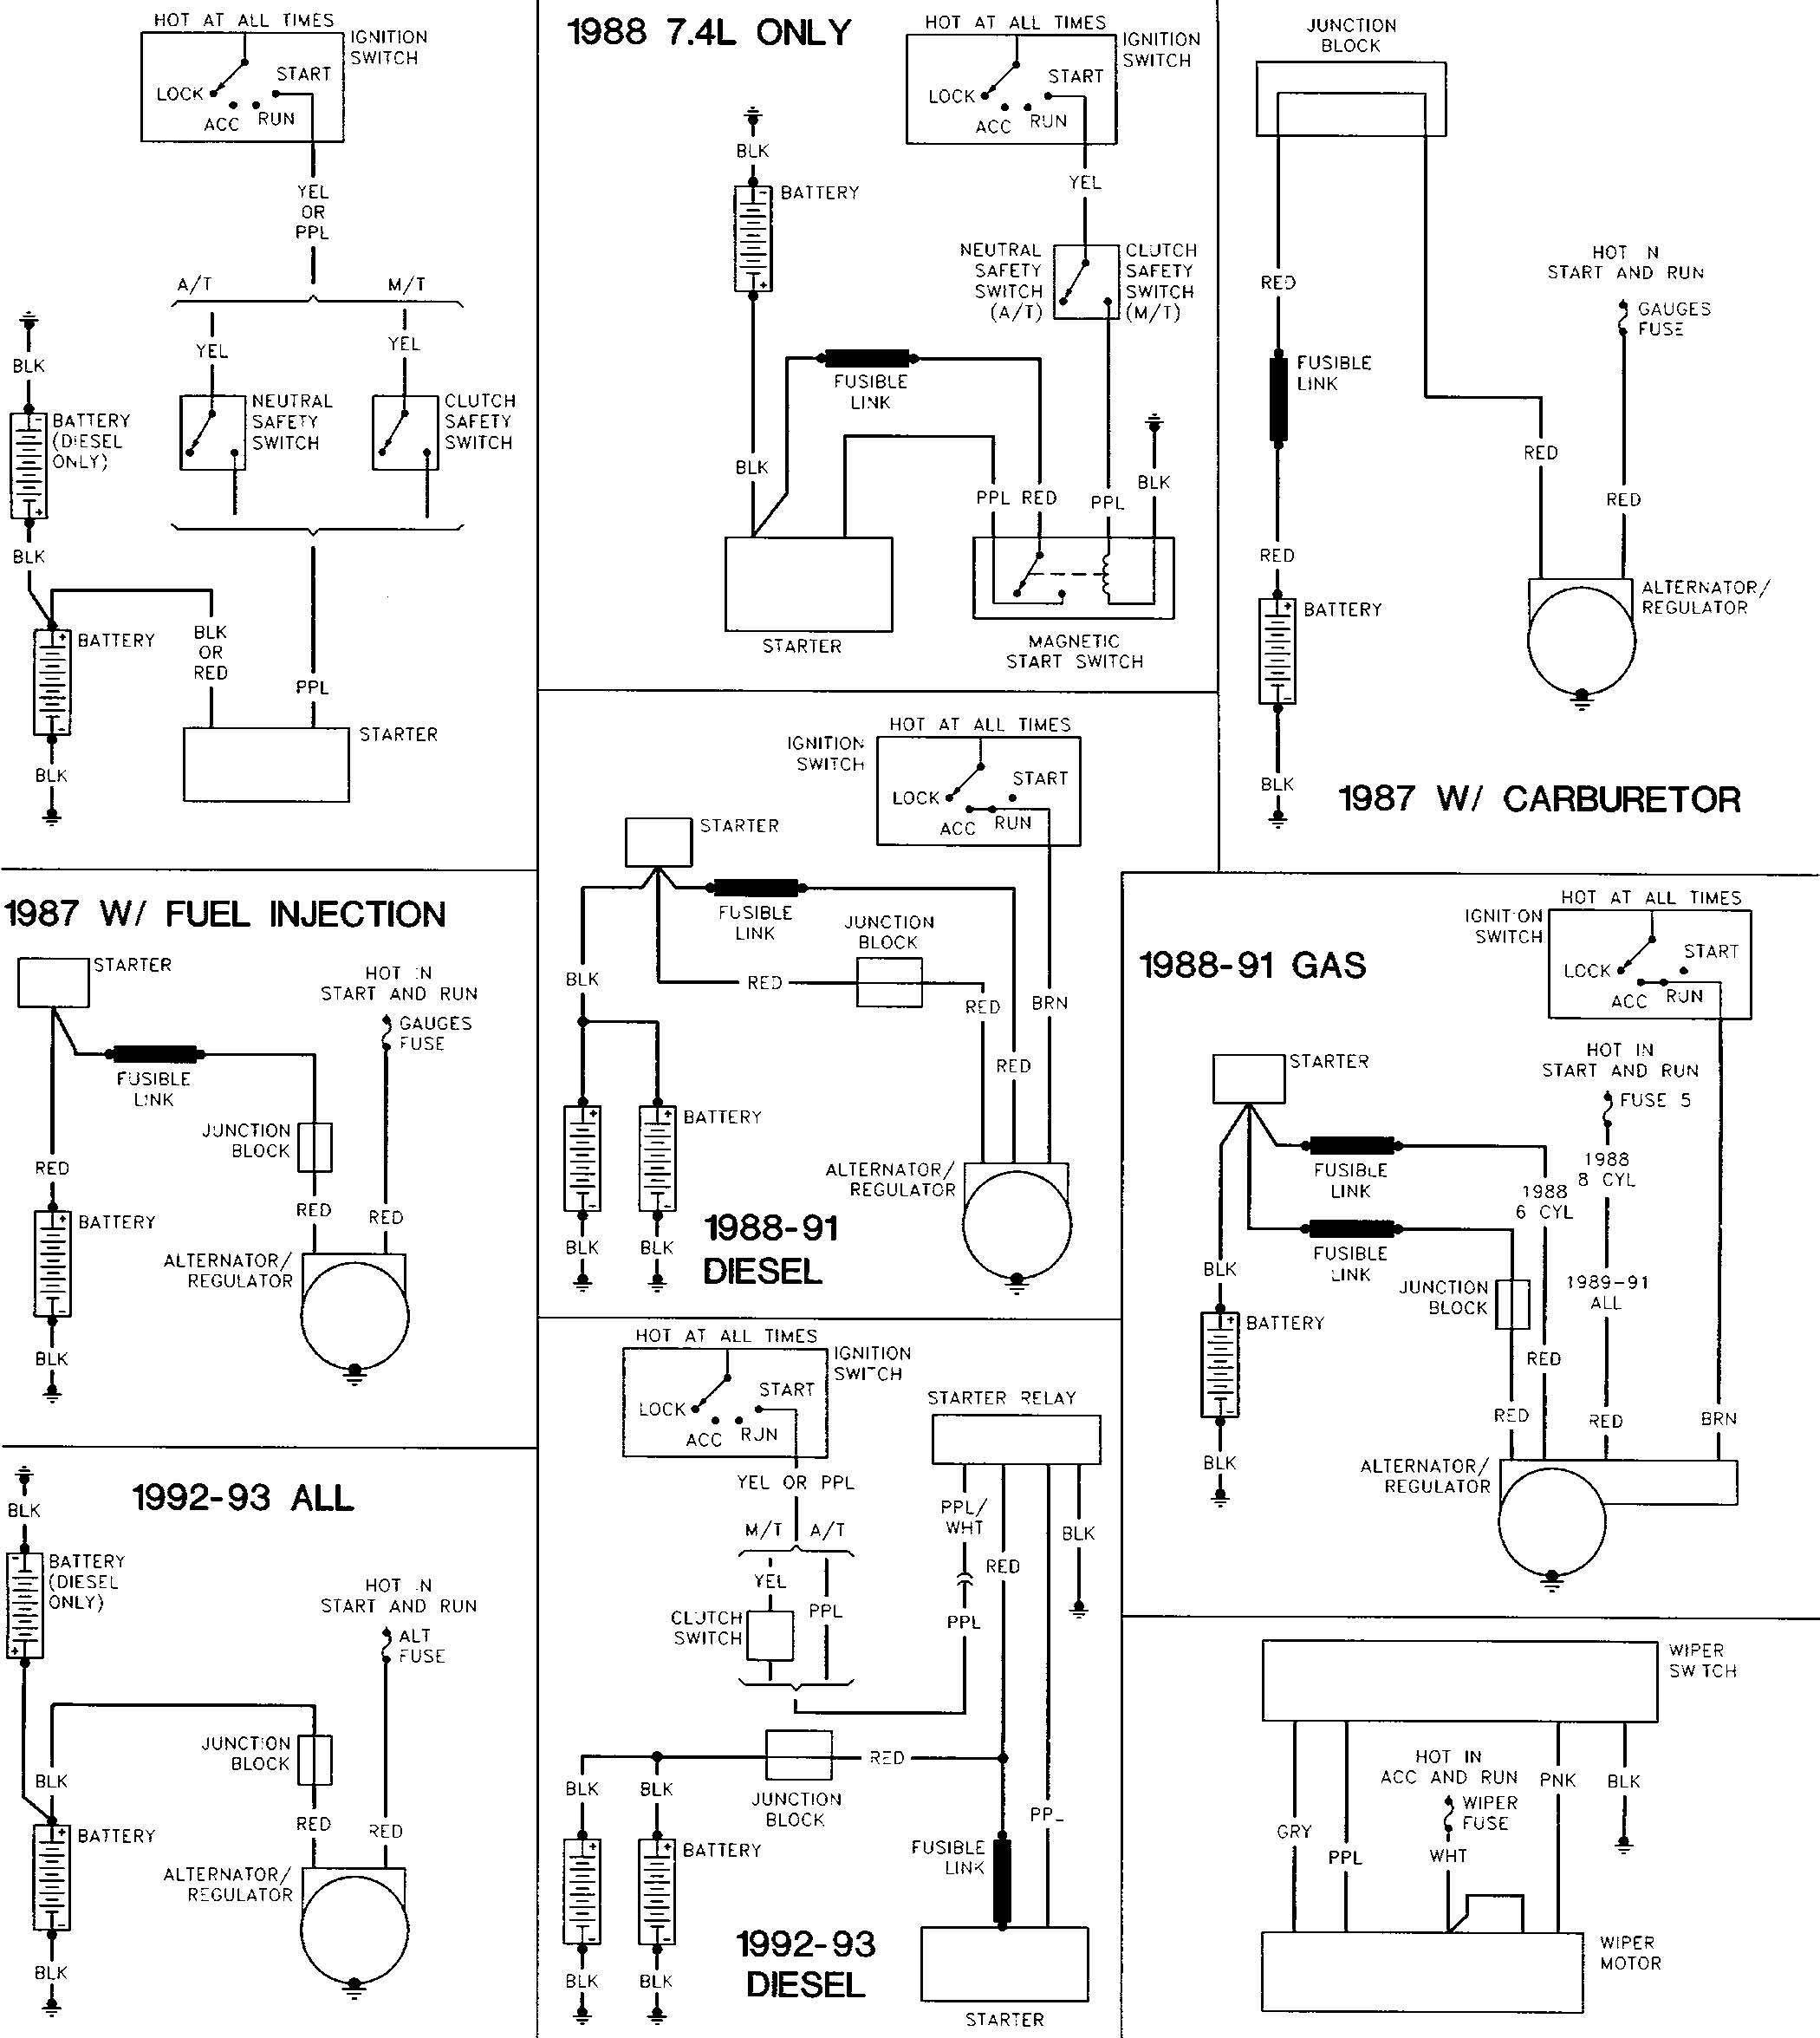 1987 Southwind Motorhome Wiring Diagrams - Painless Wiring Harness Chevy  for Wiring Diagram Schematics | Gulfstream Motorhome Wiring Diagram |  | Wiring Diagram Schematics